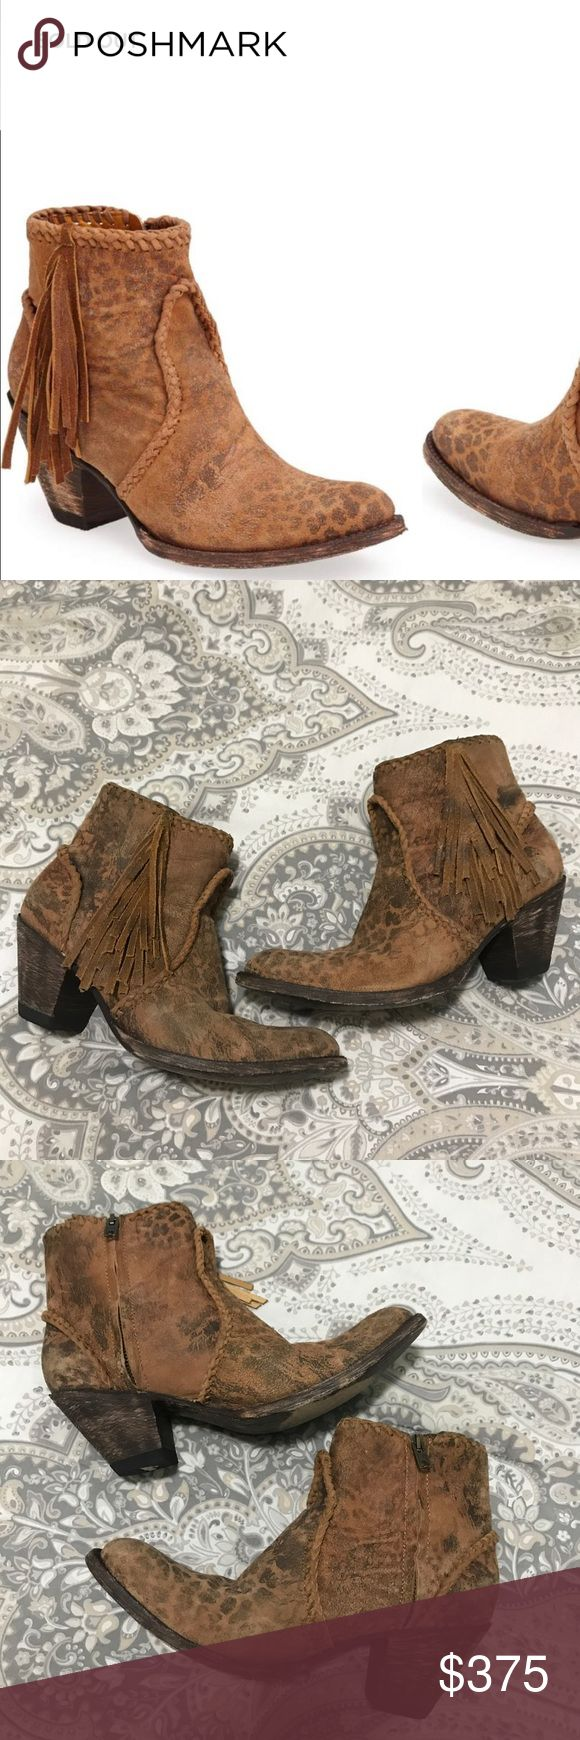 Old Gringo Adela Boots Excellent condition! Only wear is on the bottom shown in pics. Old Gringo Shoes Ankle Boots & Booties